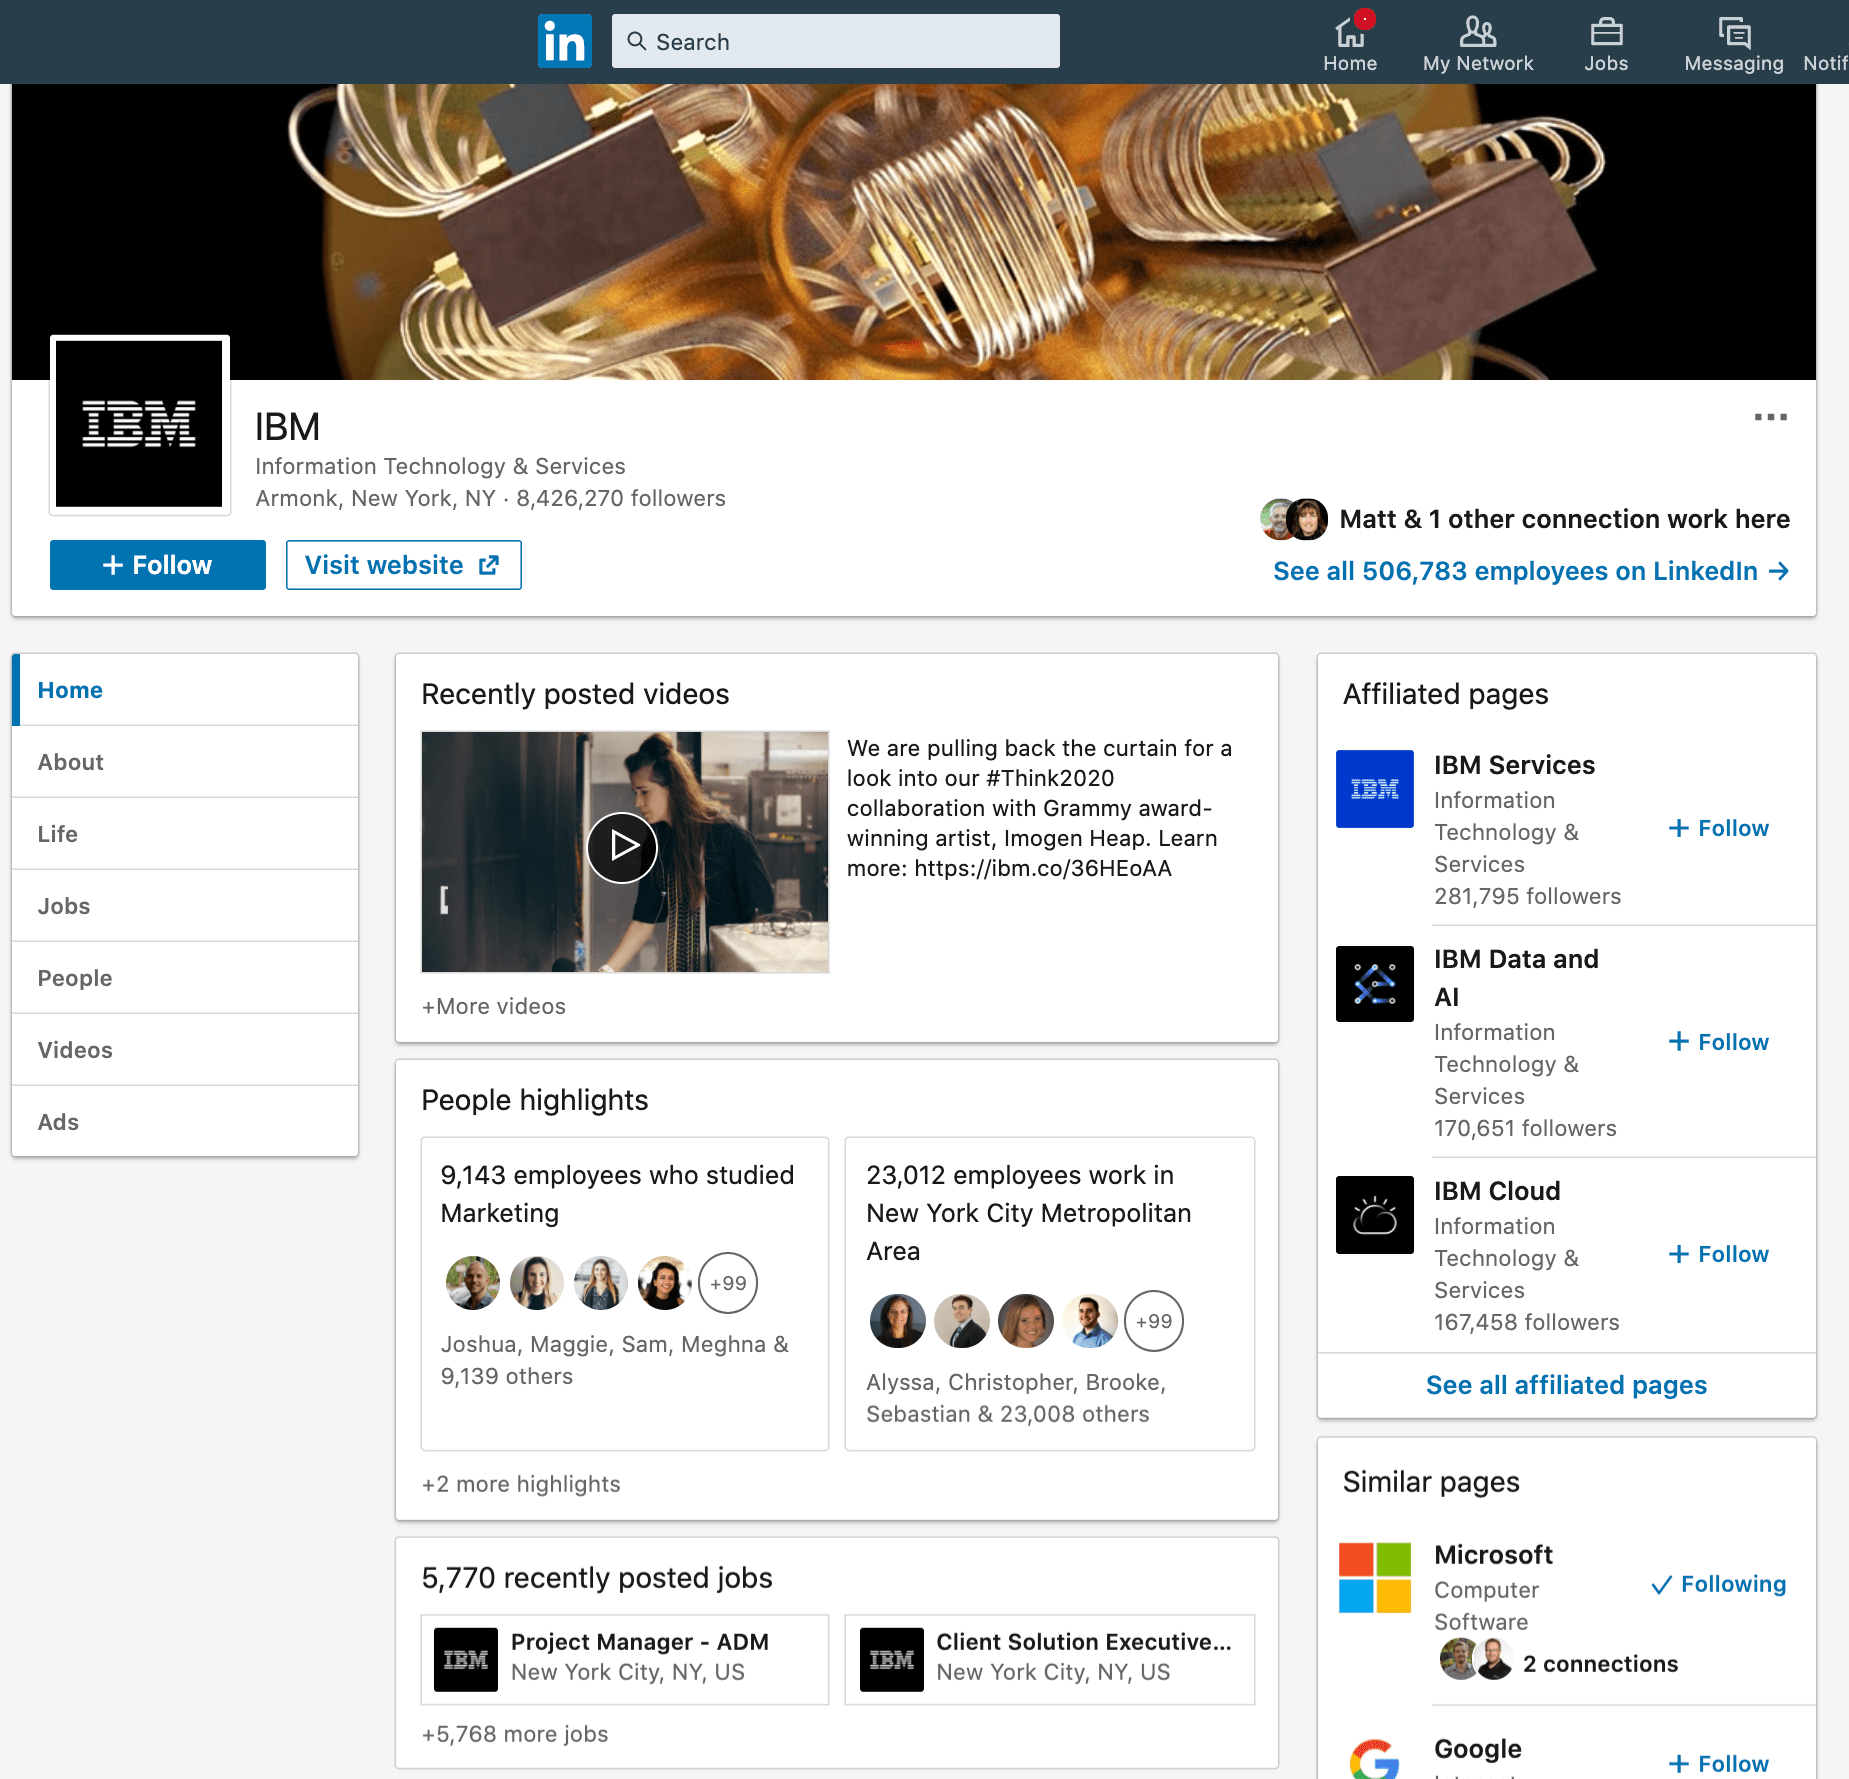 IBM_Overview_LinkedIn